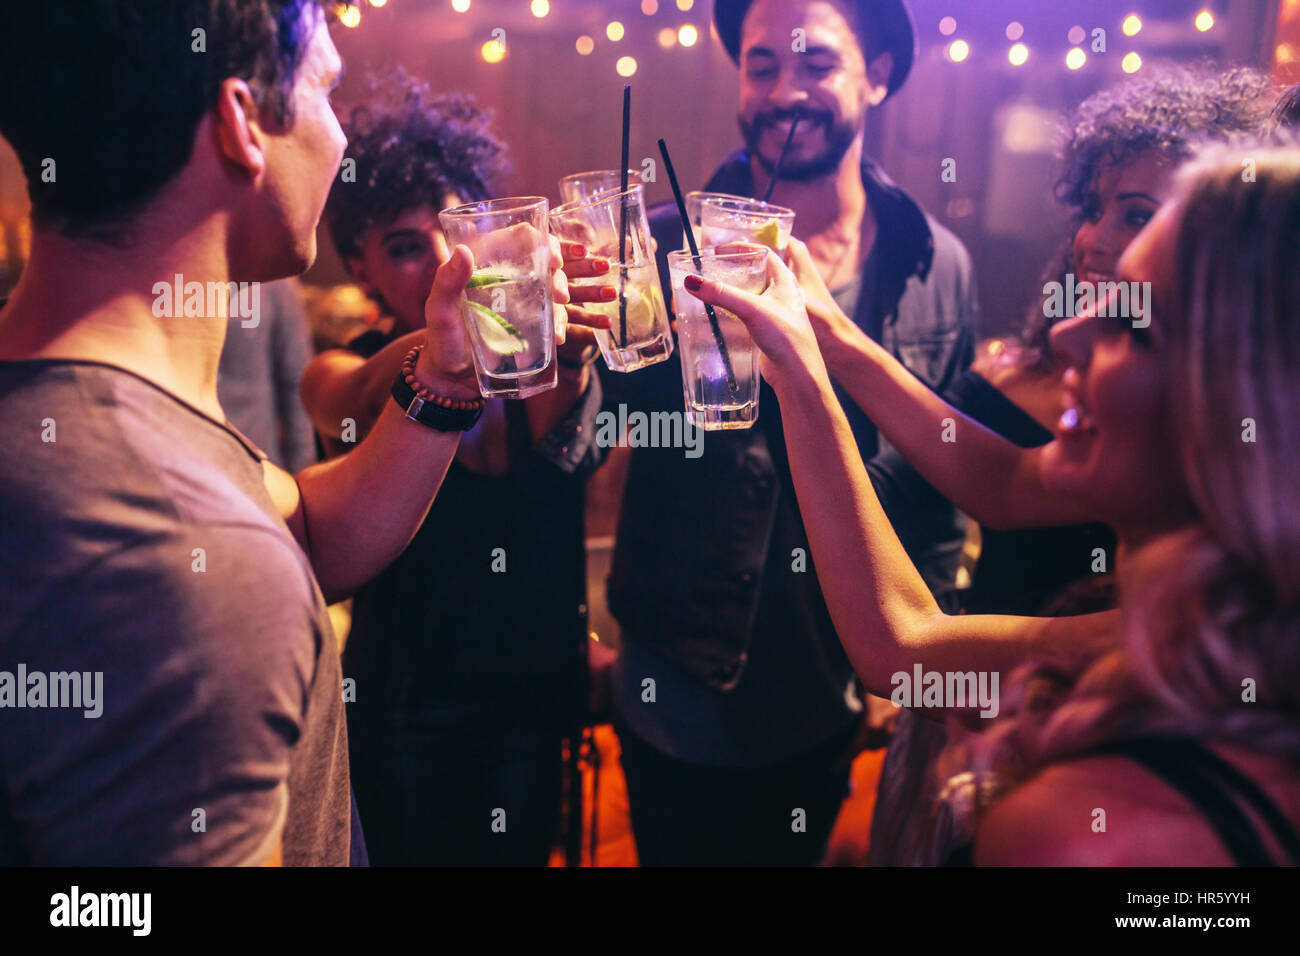 Group of young friends in club toasting with cocktails. Young men and women at nightclub celebrating with drinks. - Stock Image